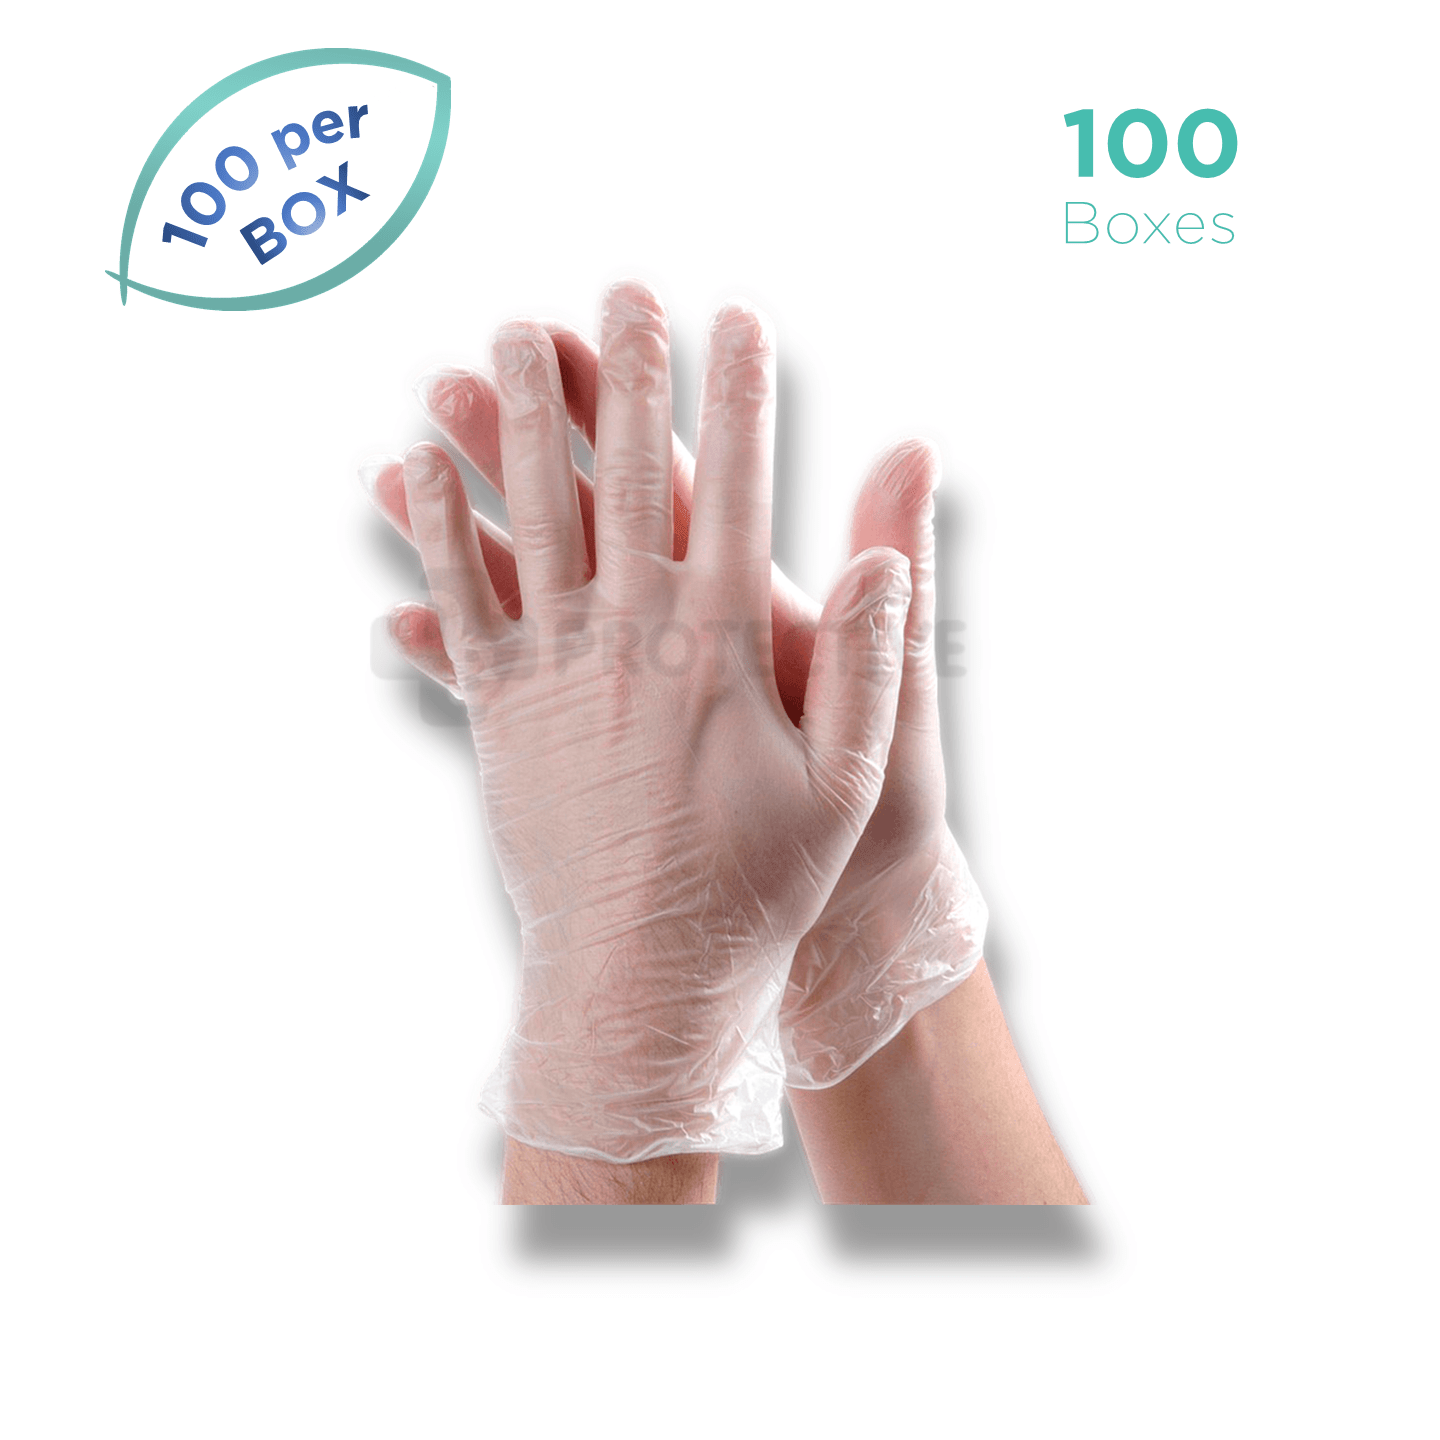 Vinyl Examination Gloves - Pack of 10,000. - USA Medical Supply - DB Protective